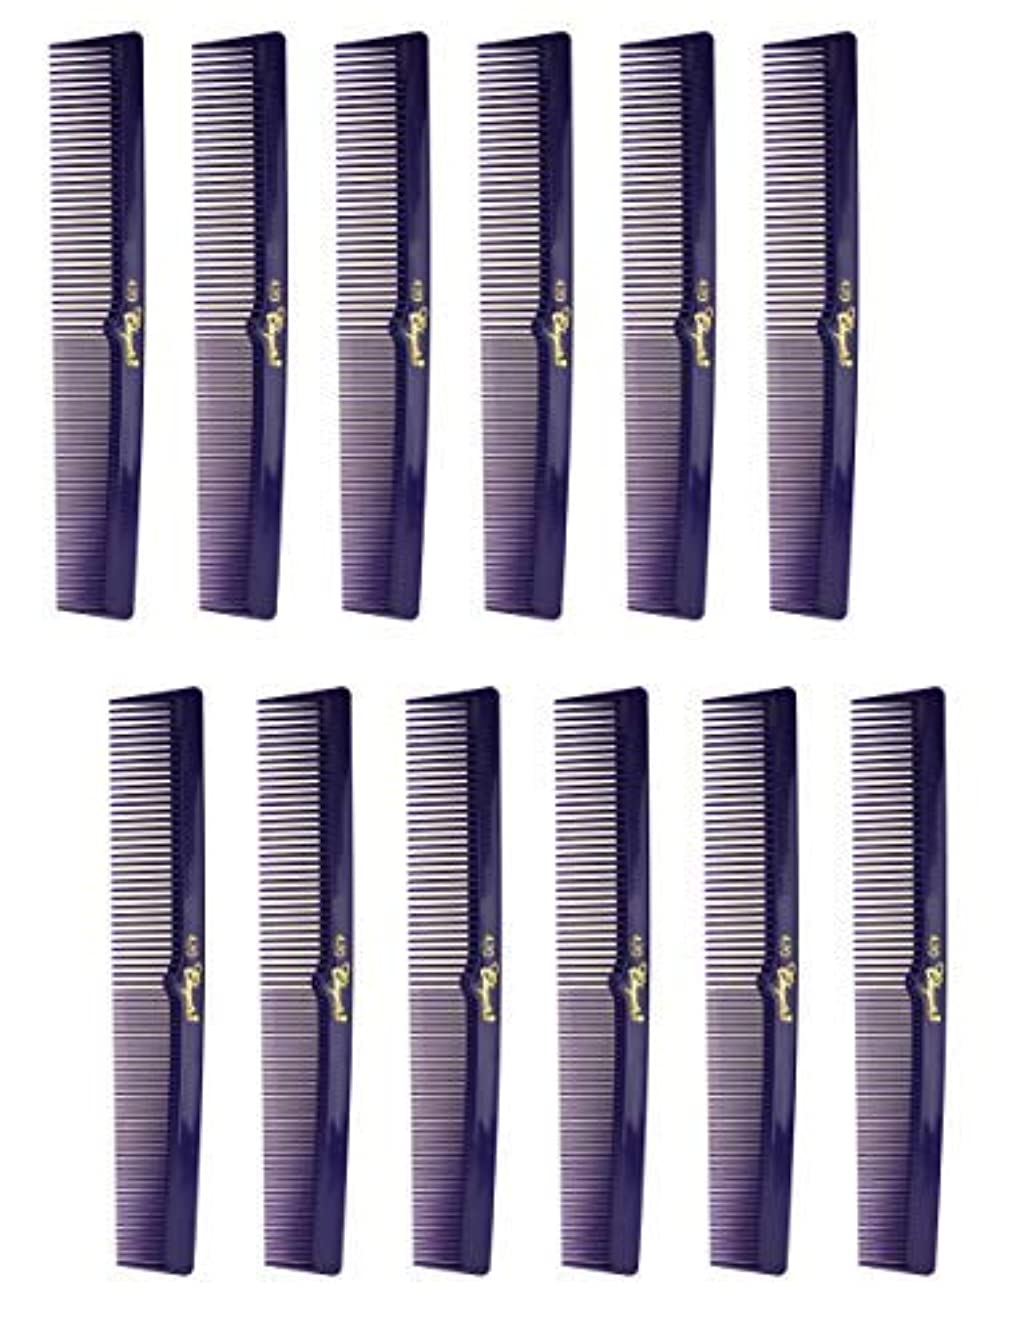 女将納税者現象7 Inch Hair Cutting Combs. Barber's & Hairstylist Combs. Purple 1 DZ. [並行輸入品]